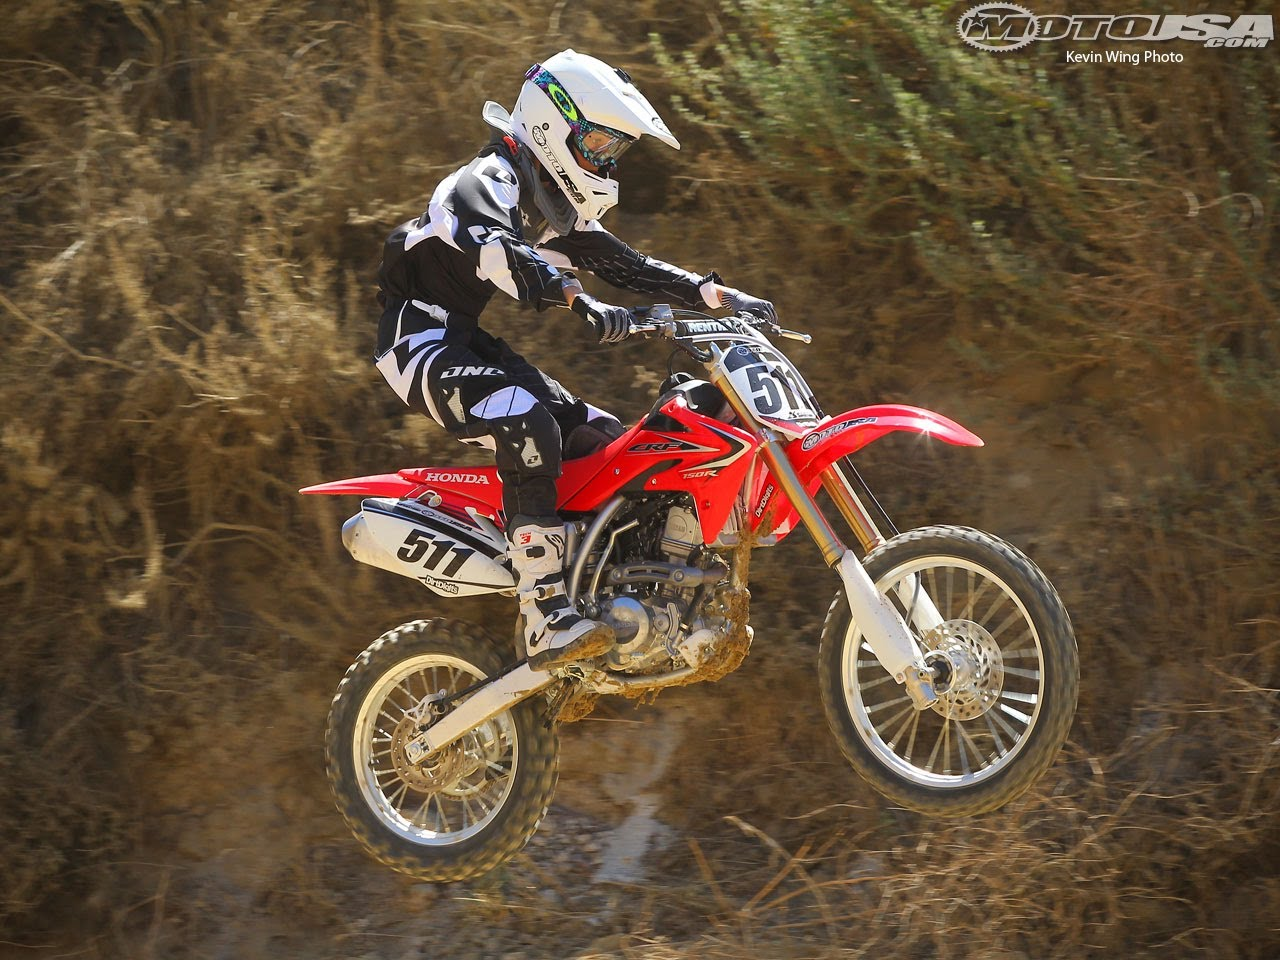 2012 Honda Crf 150 R Expert Pics Specs And Information Wiring Diagram 28550